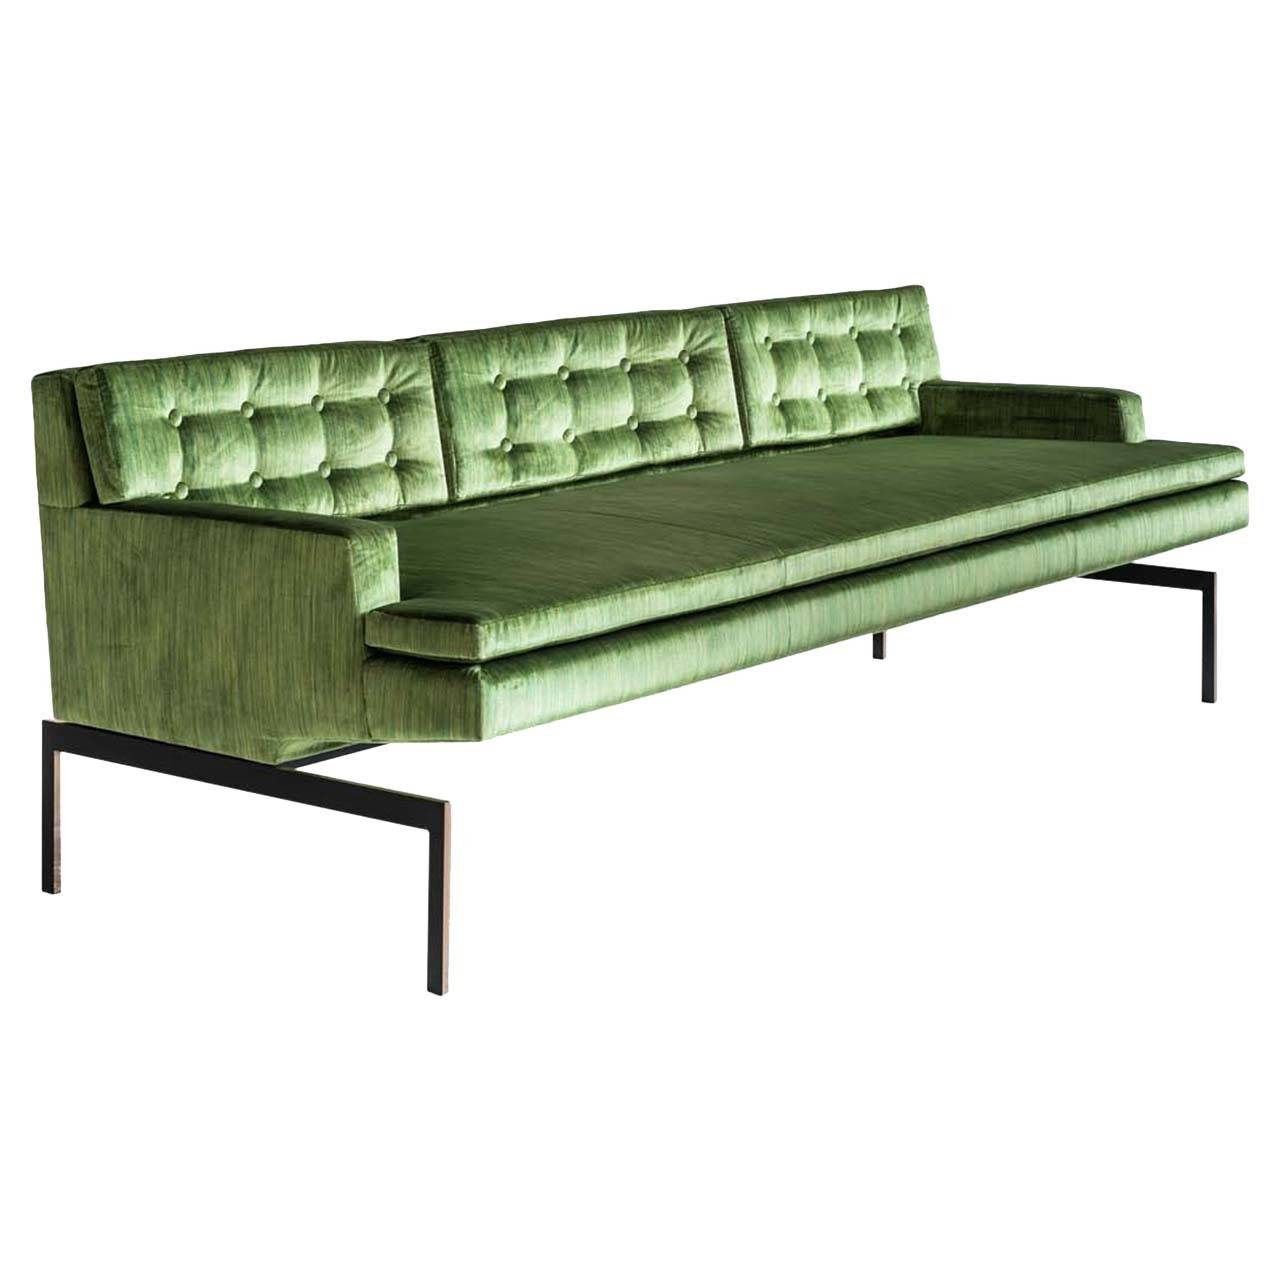 Mancini Sofa with Tufted Back in Green Velvet and Silicon Bronze Base